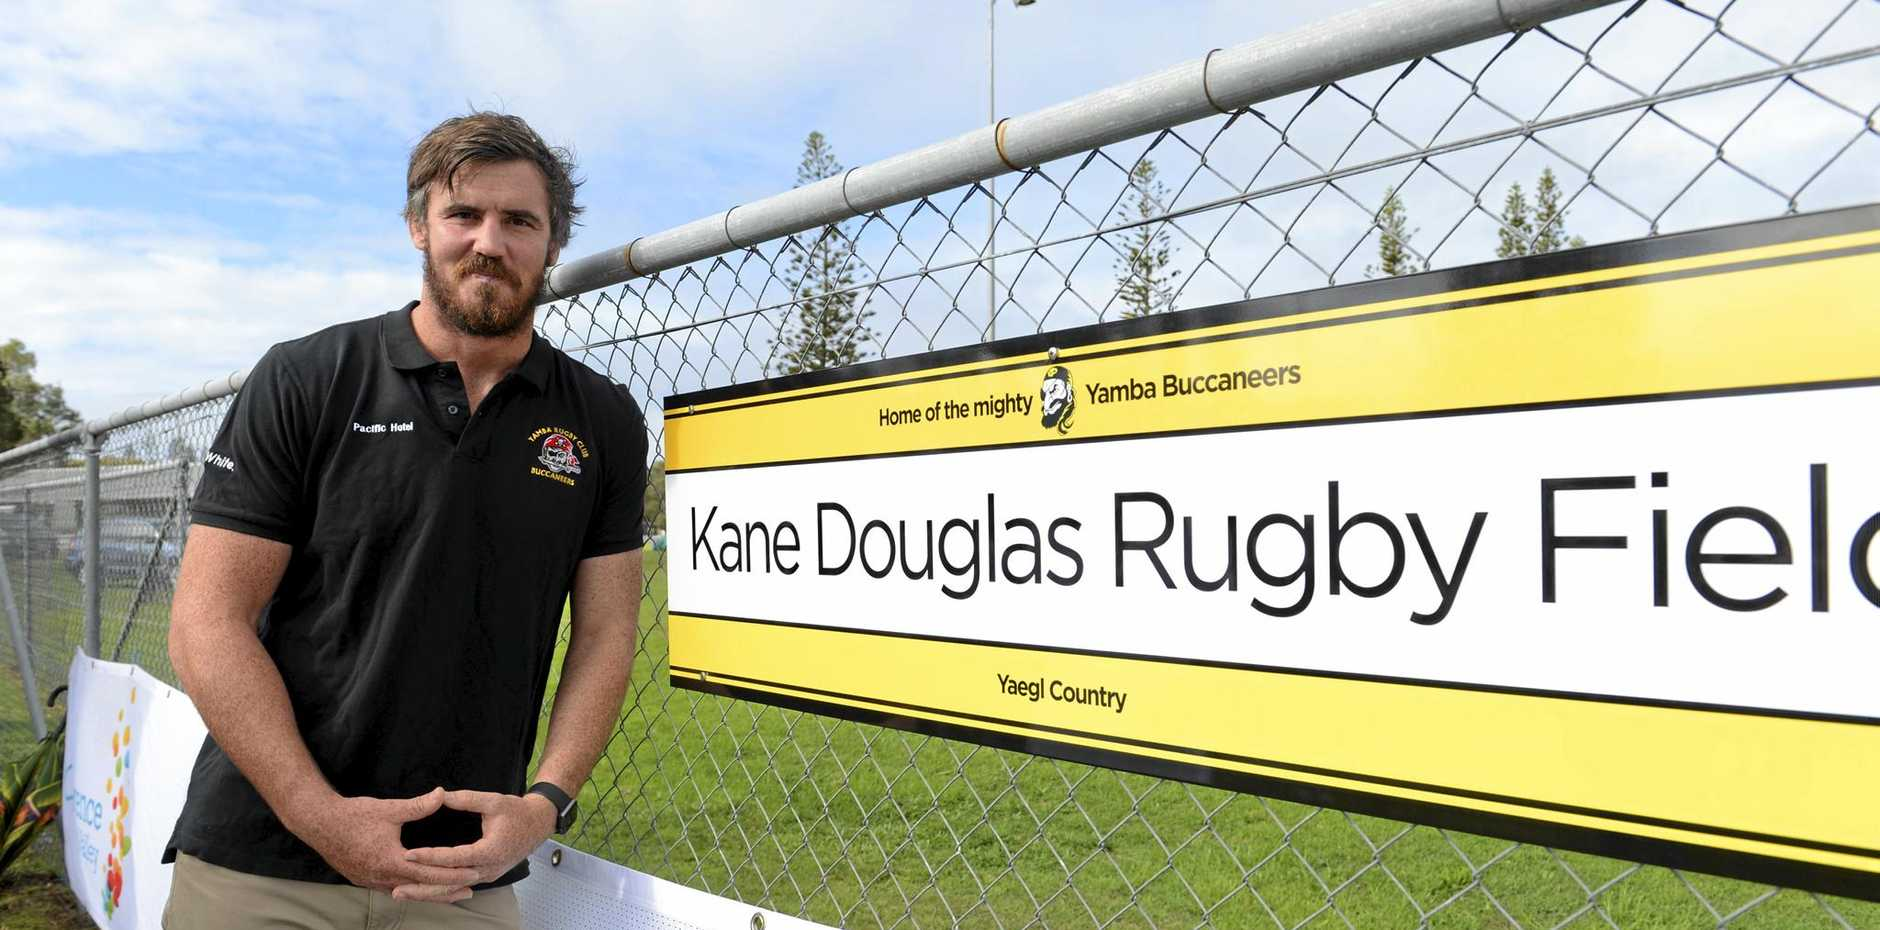 Australian Wallaby Kane Douglas at the naming of the Kane Douglas Rugby Field at the Yamba Buccaneers home ground on Saturday, 20th May 2017.